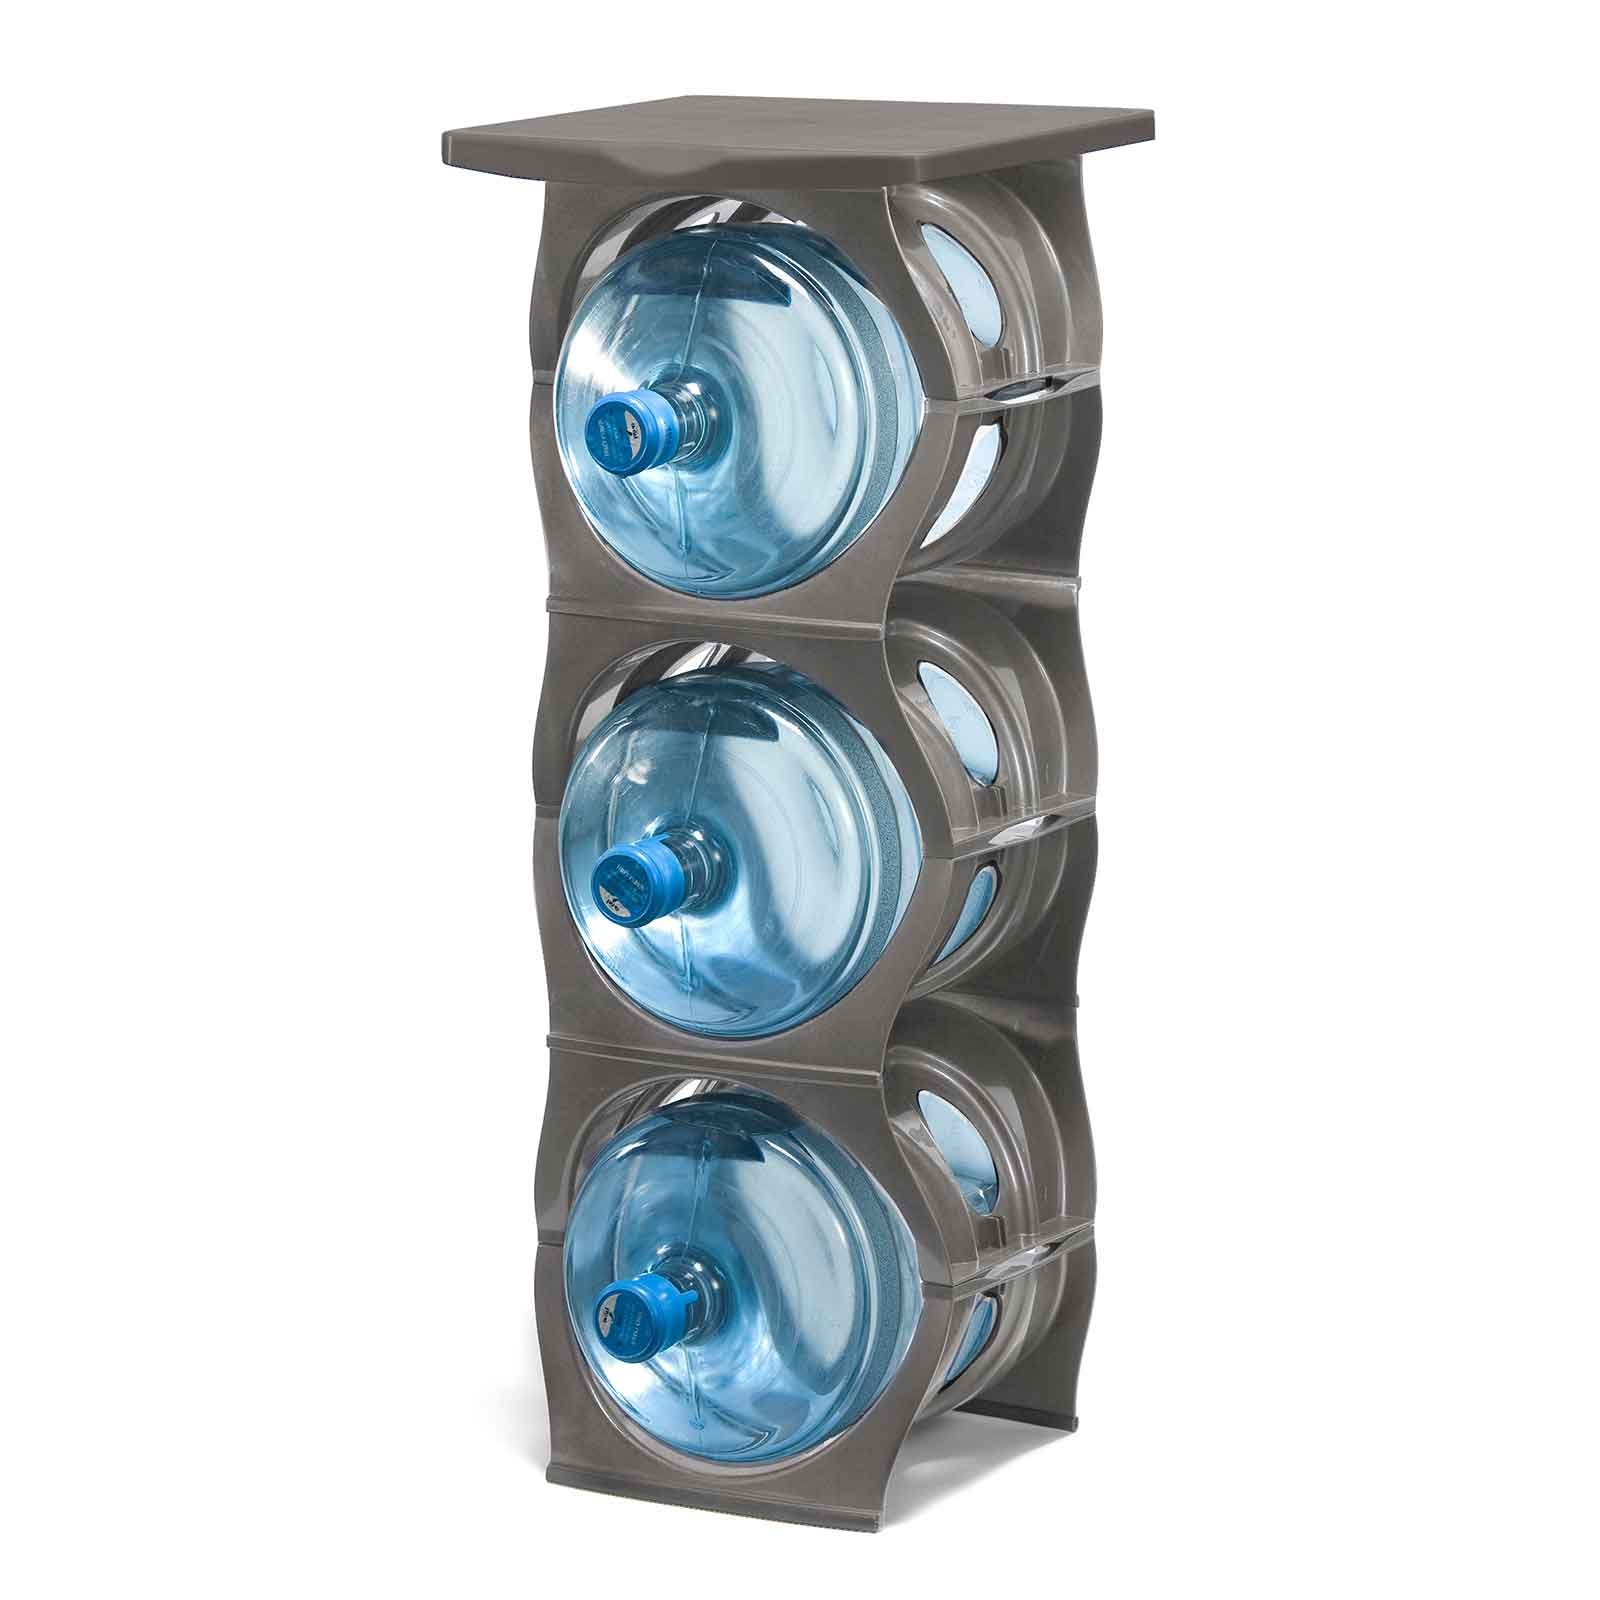 U-STACK Water Bottle Storage Rack - Holds Three 5 Gallon Bottles for Water Coolers (3 Bottle with Shelf) (Silver)